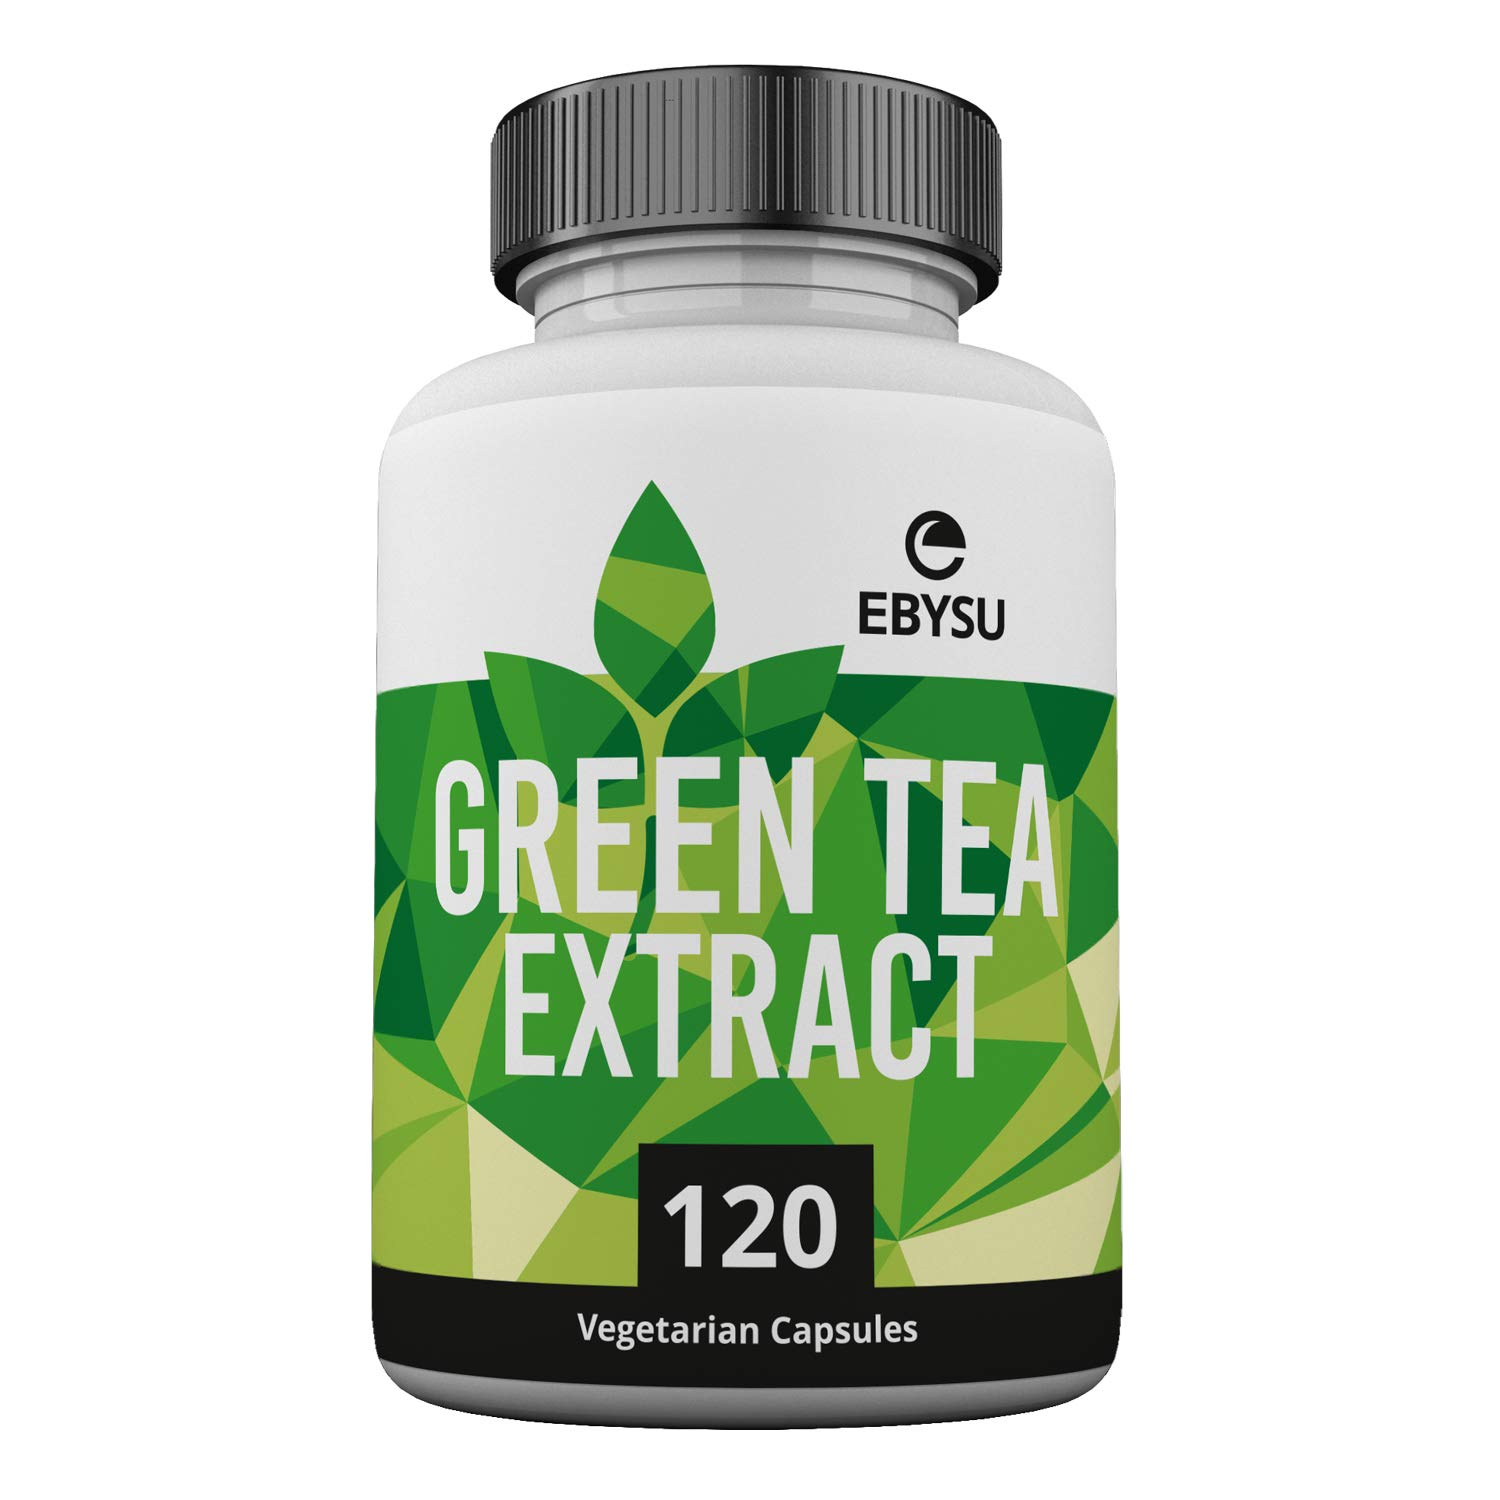 EBYSU Green Tea Extract - 120 Day Supply - 500mg Vegan Capsules with ECGC for Energy Boost & Weight Loss - Made in USA, Non GMO Supplement Pills